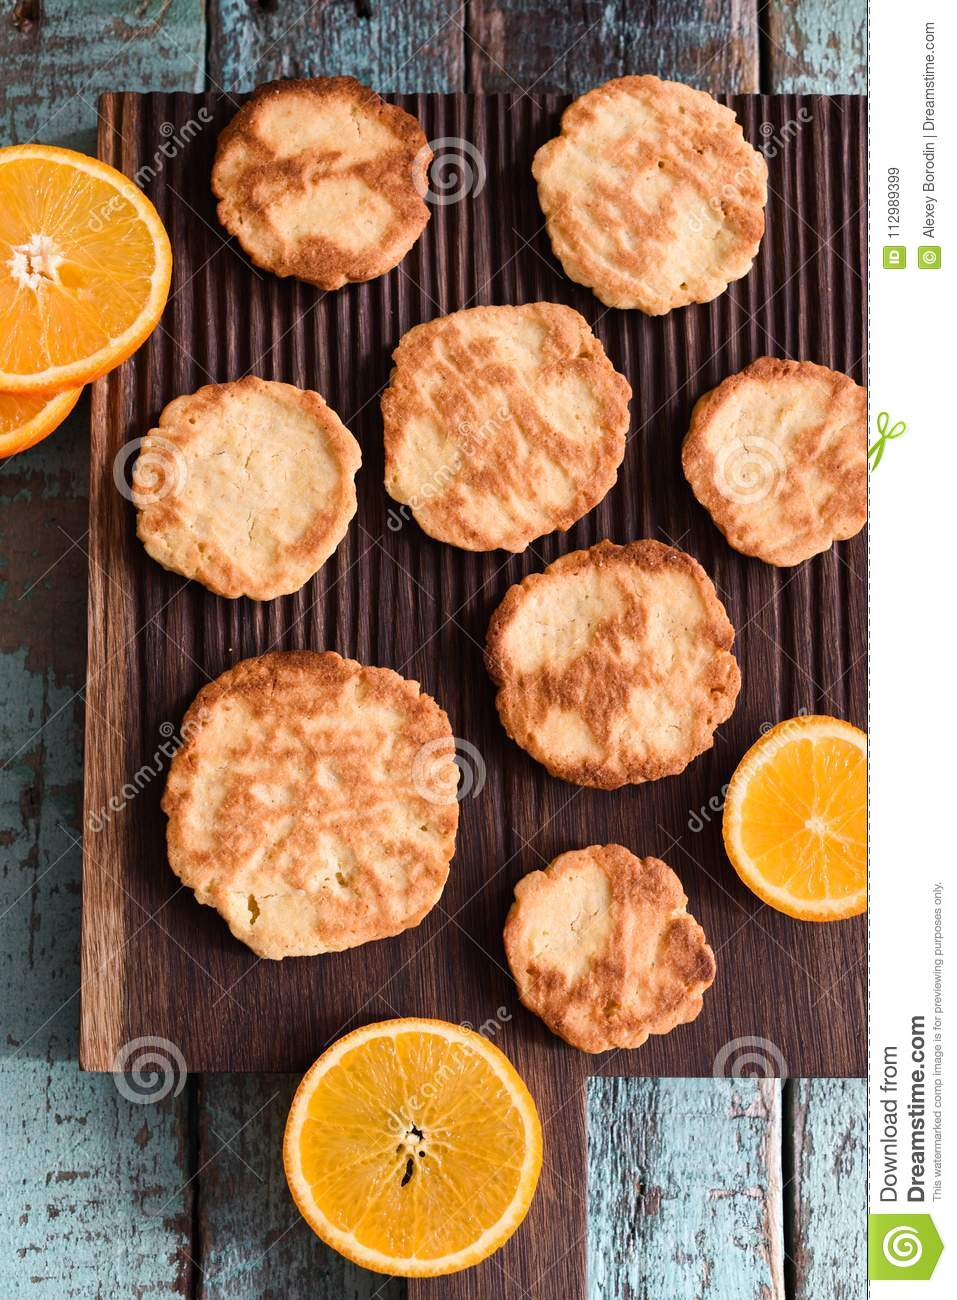 Healthy homemade sweets. Cookies and orange slices on oak cutting board on shabby blue background